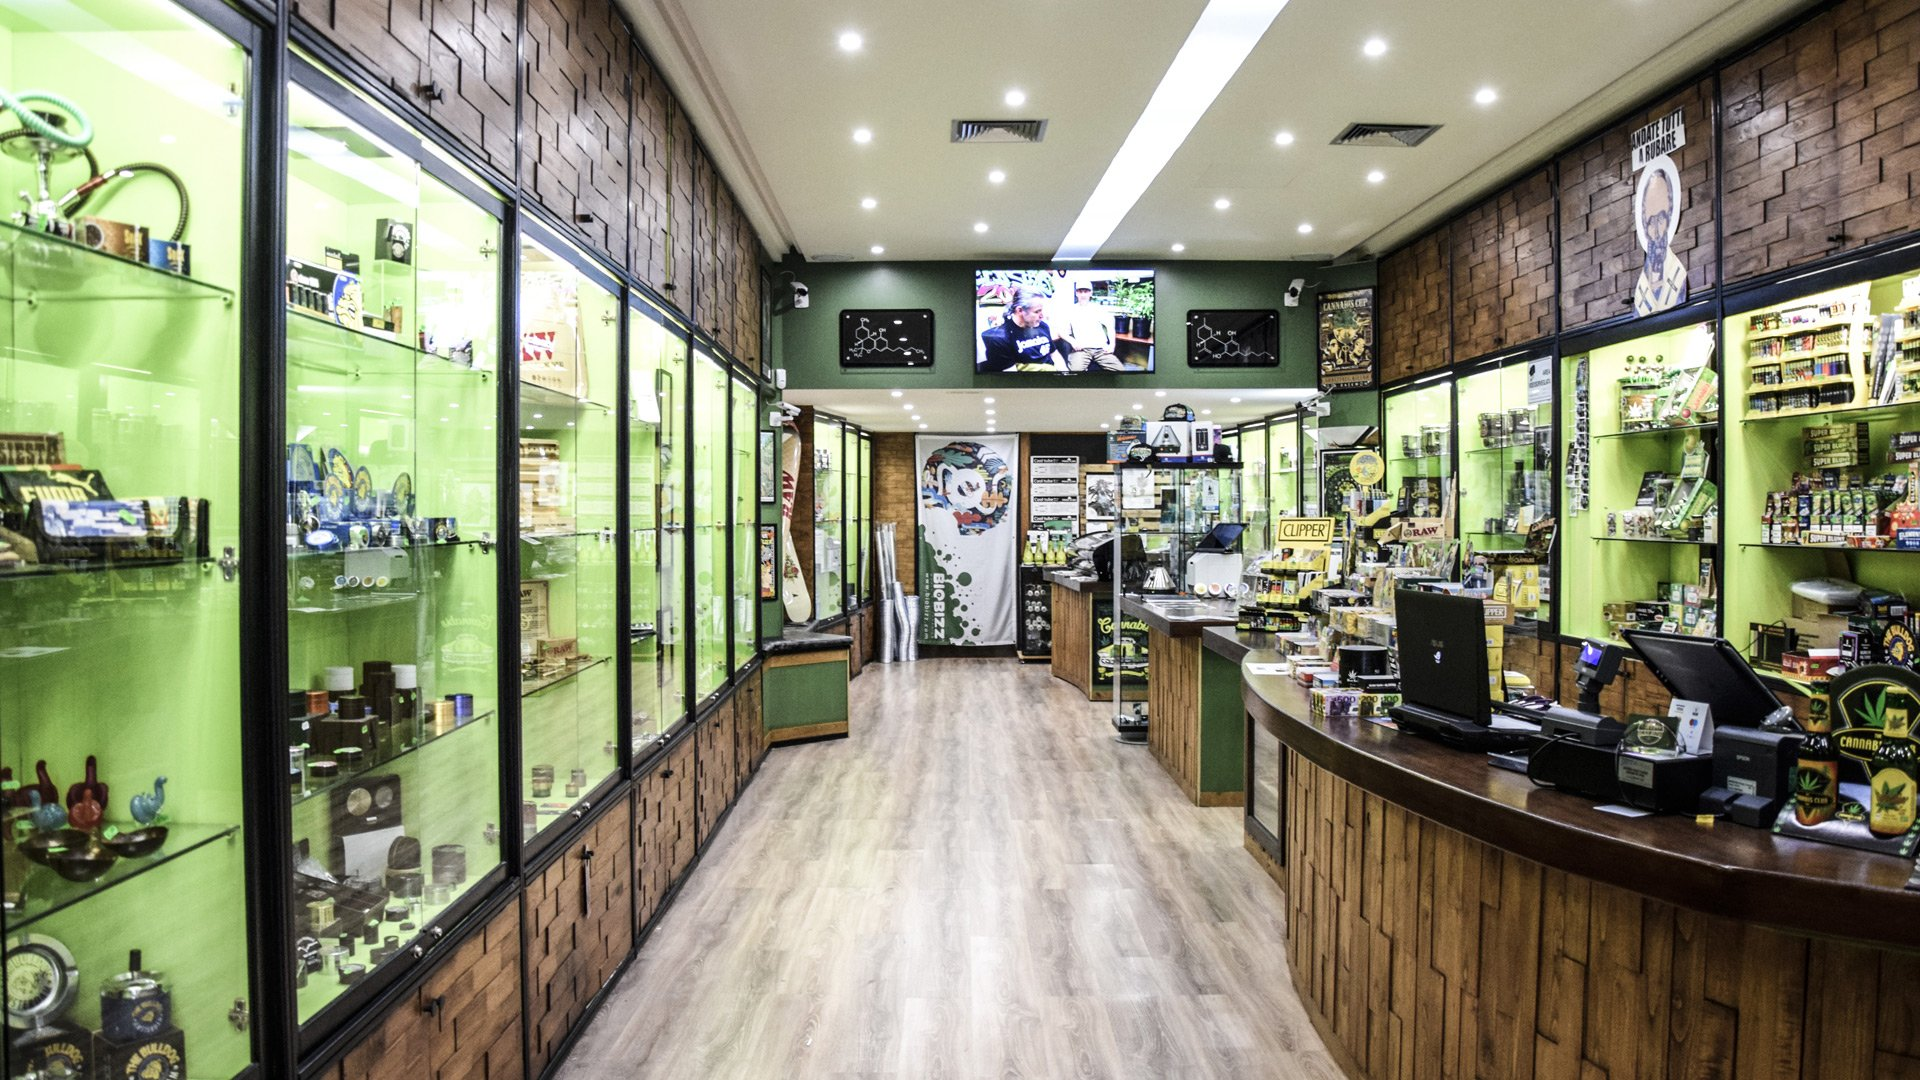 BEAR BUSH BARI - Cannabis Light Shop Bari - Italia